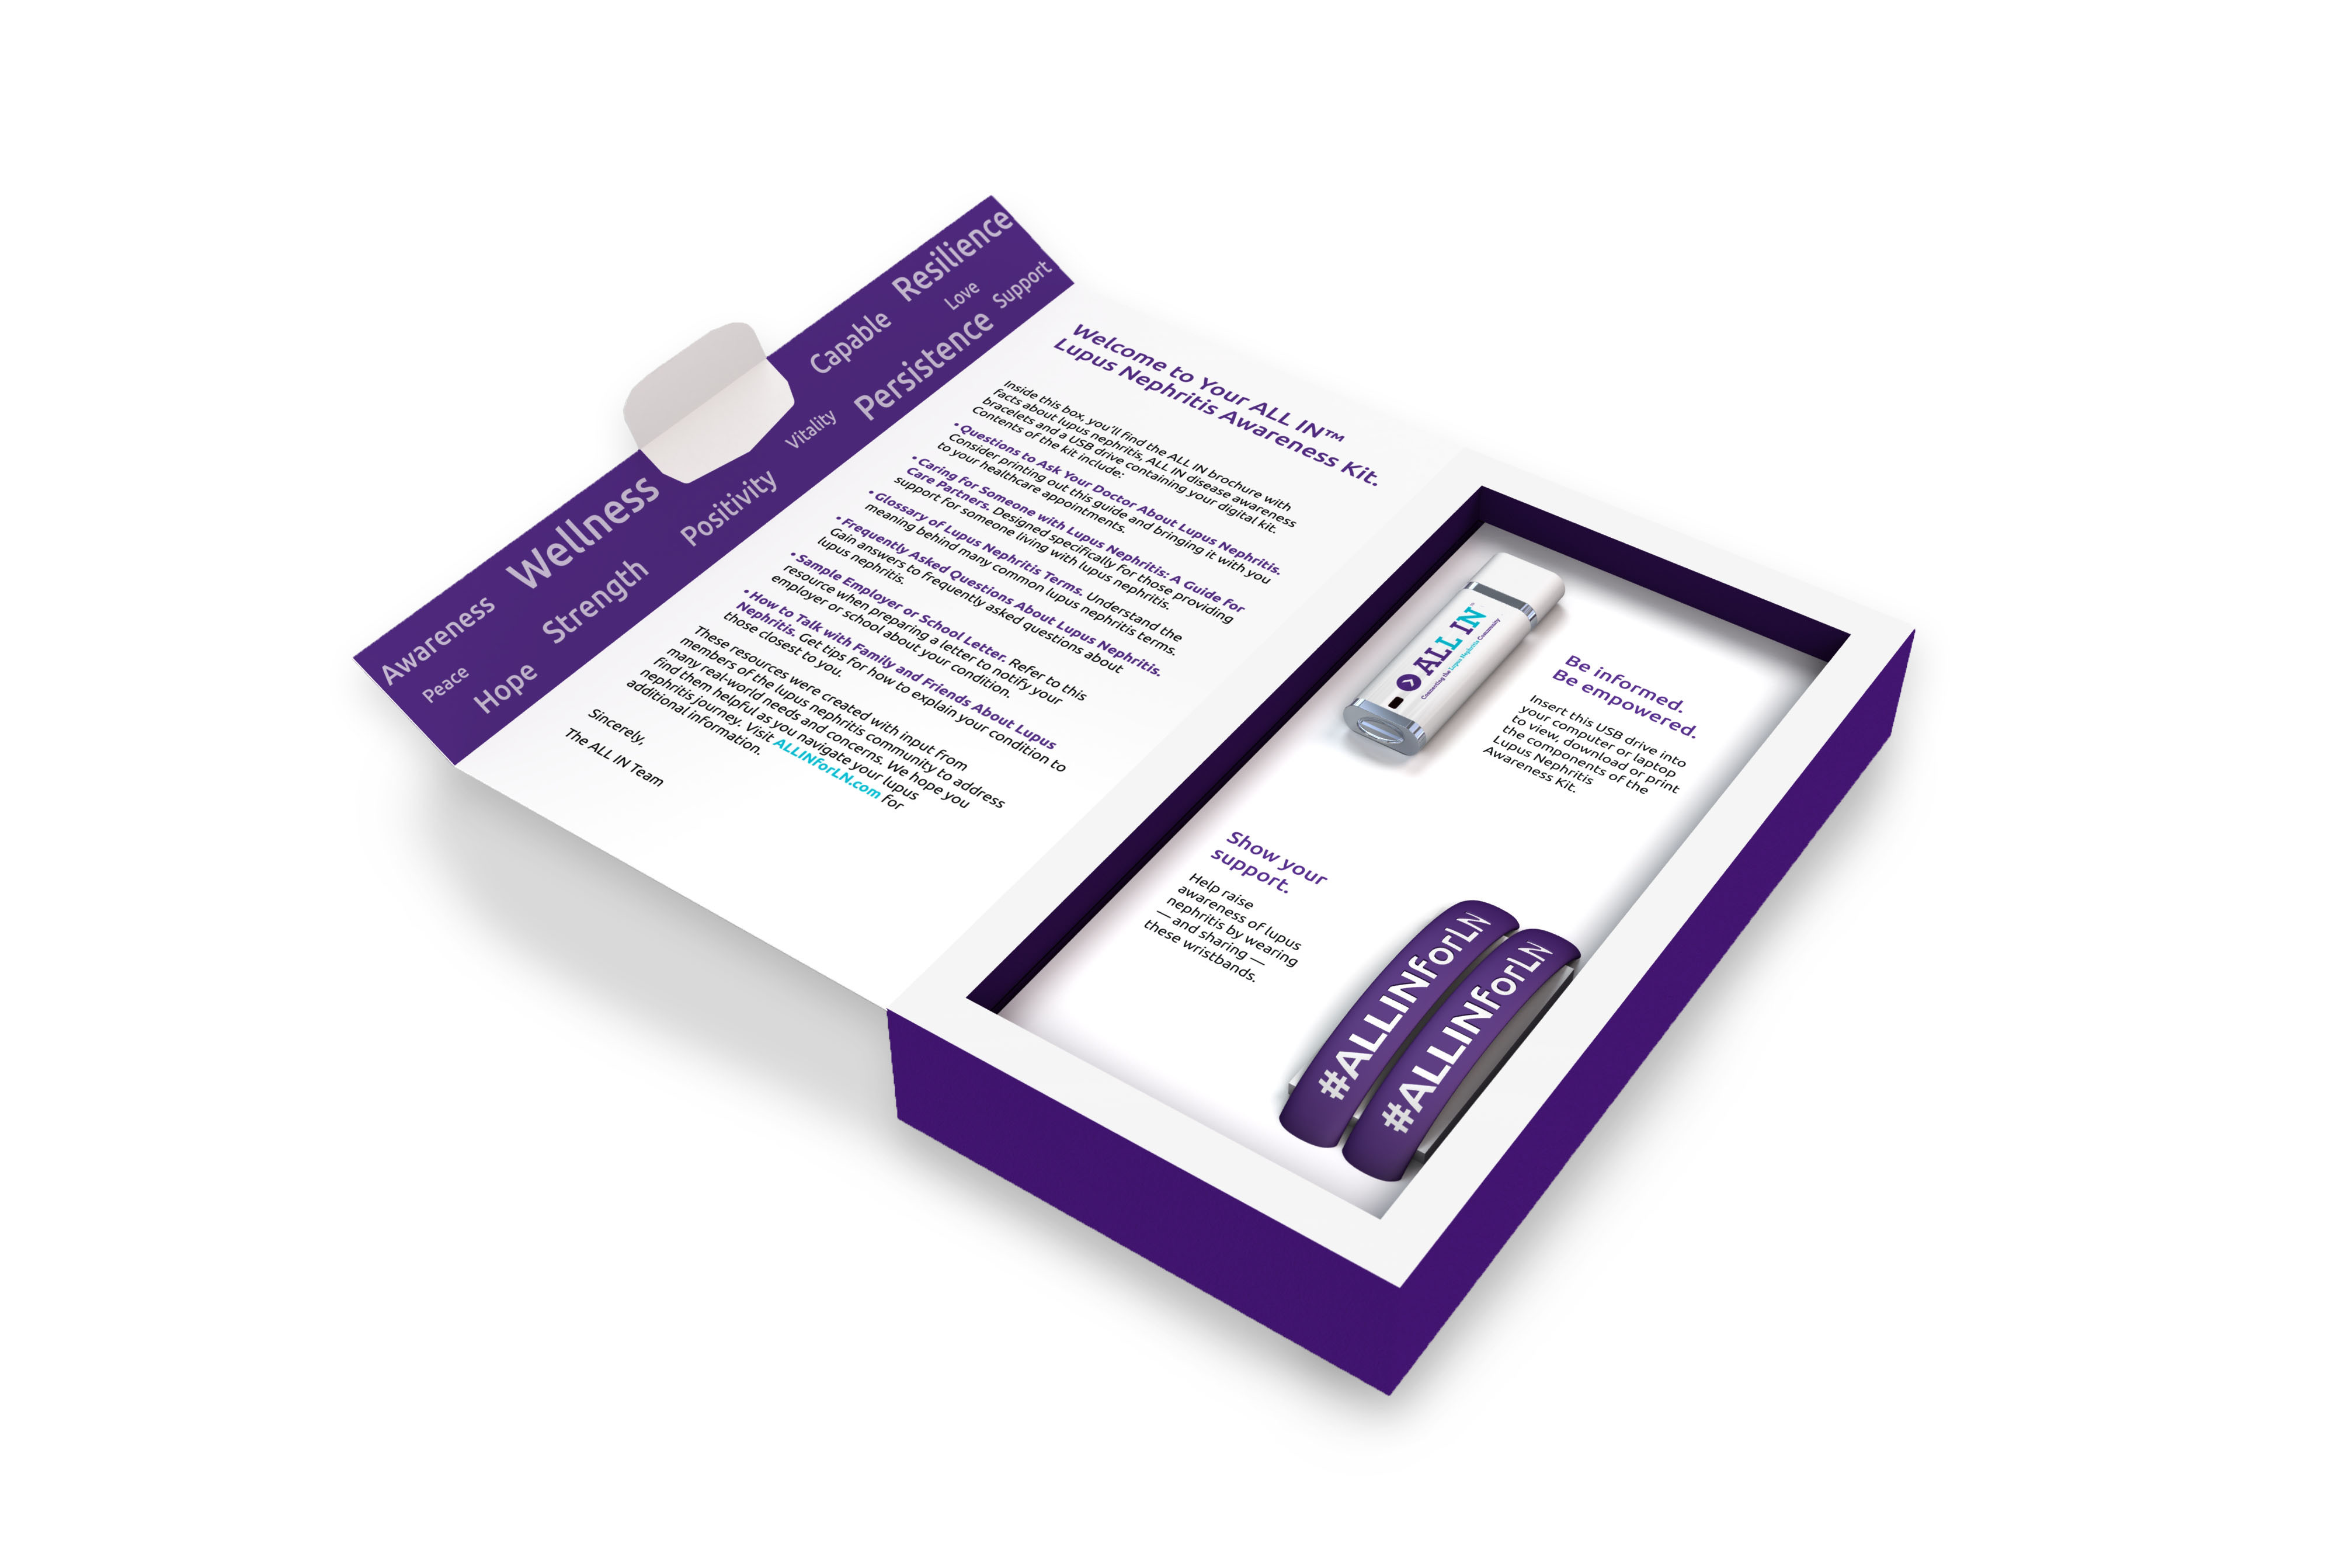 Be informed and empowered with the ALL IN™ Lupus Nephritis Awareness Resource Kit